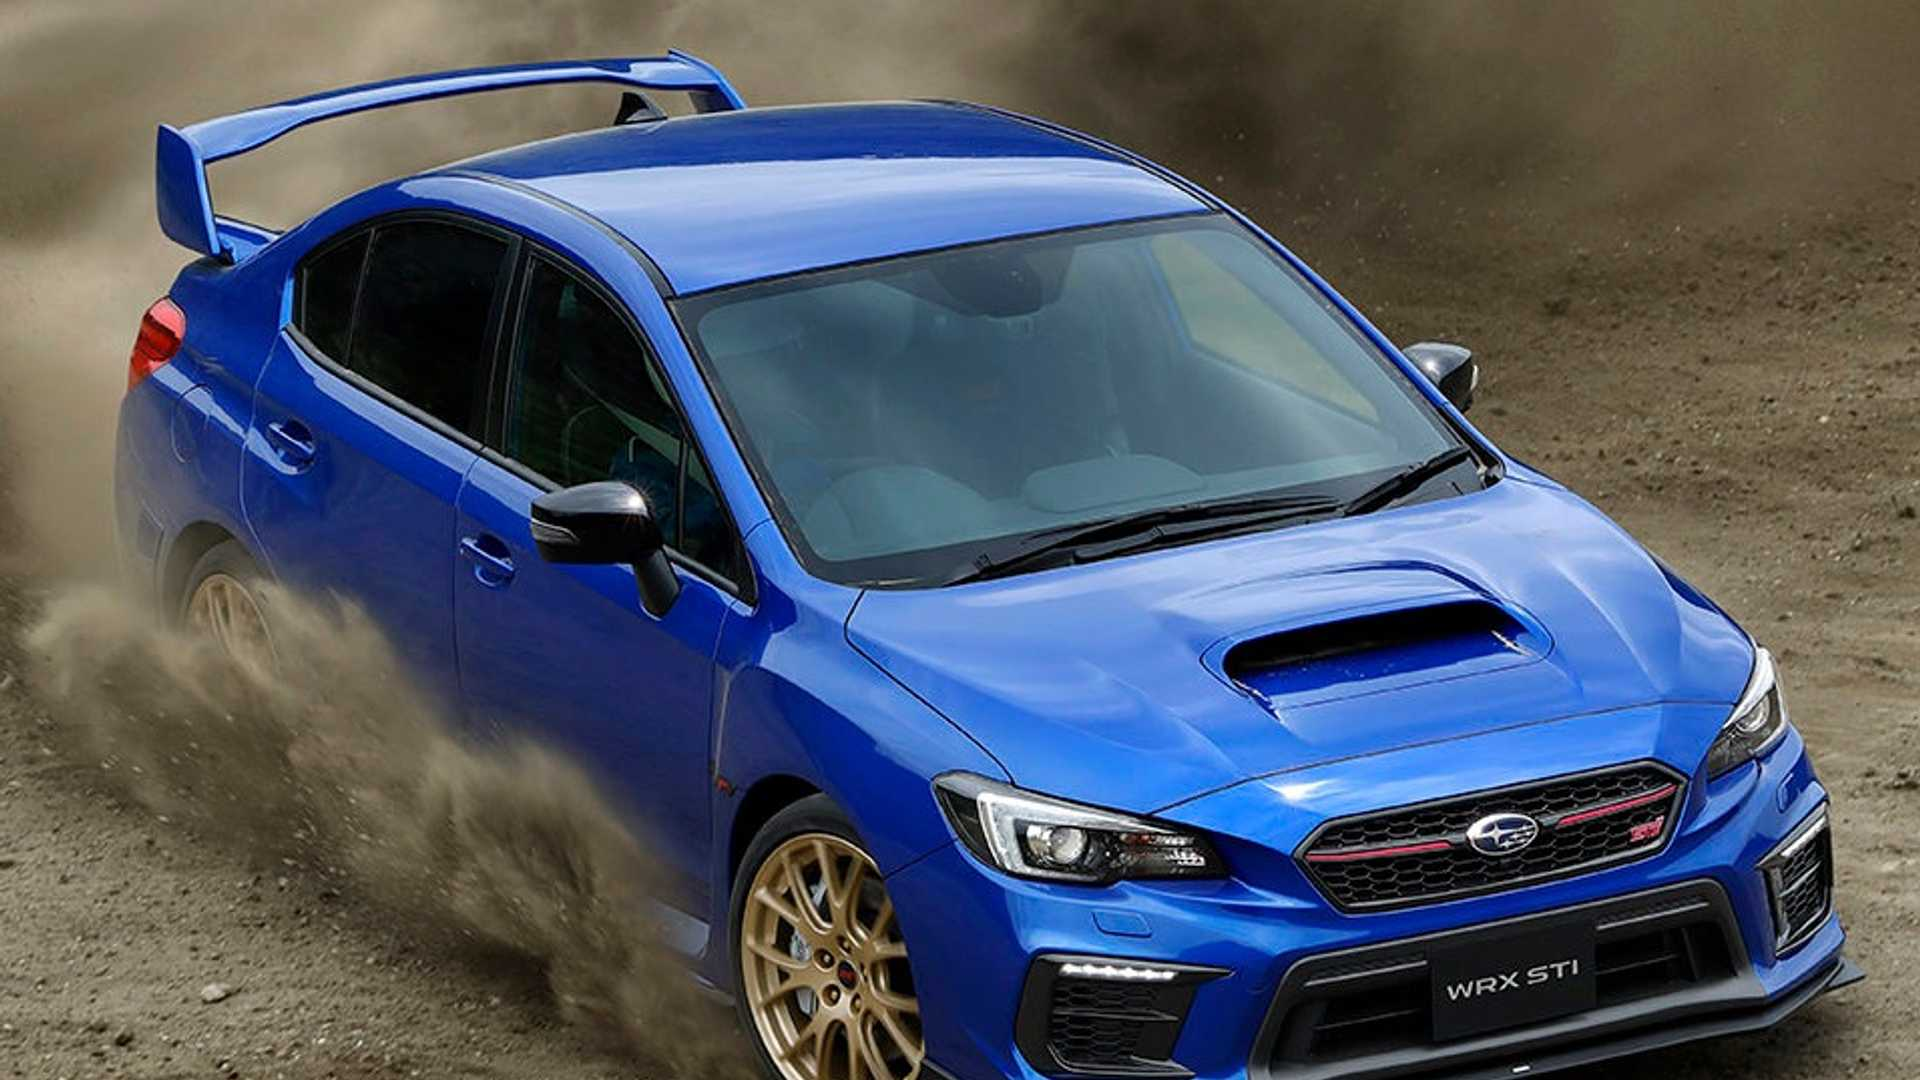 Impreza Wrx Sti >> Subaru Reportedly Teaming Up With Toyota For Next Gen Wrx